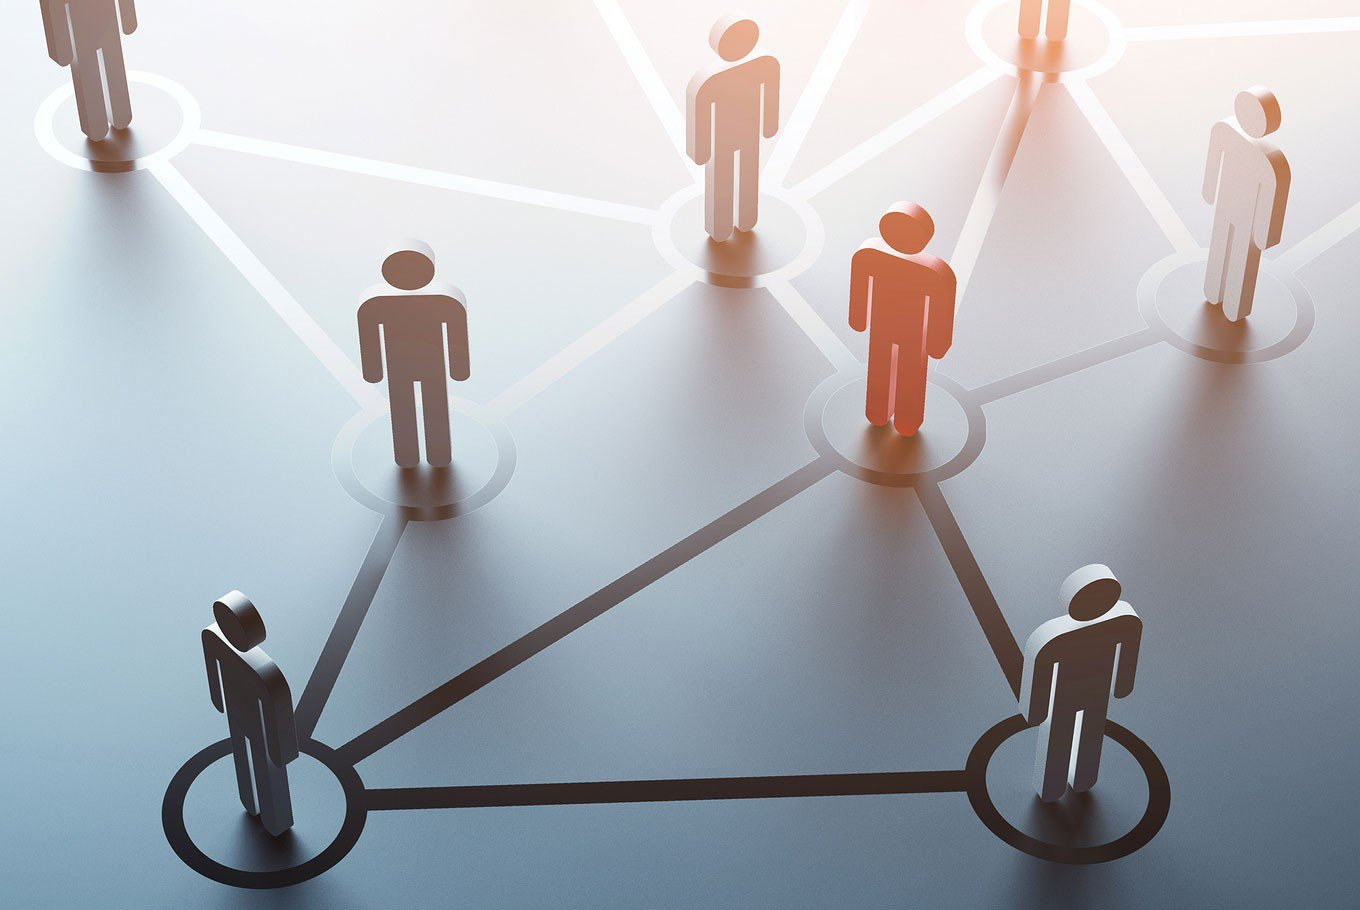 High self-monitoring individuals exhibit ease and social skills when interacting with others that enable them to be centrally connected in organizational networks. (Shutterstock/File)